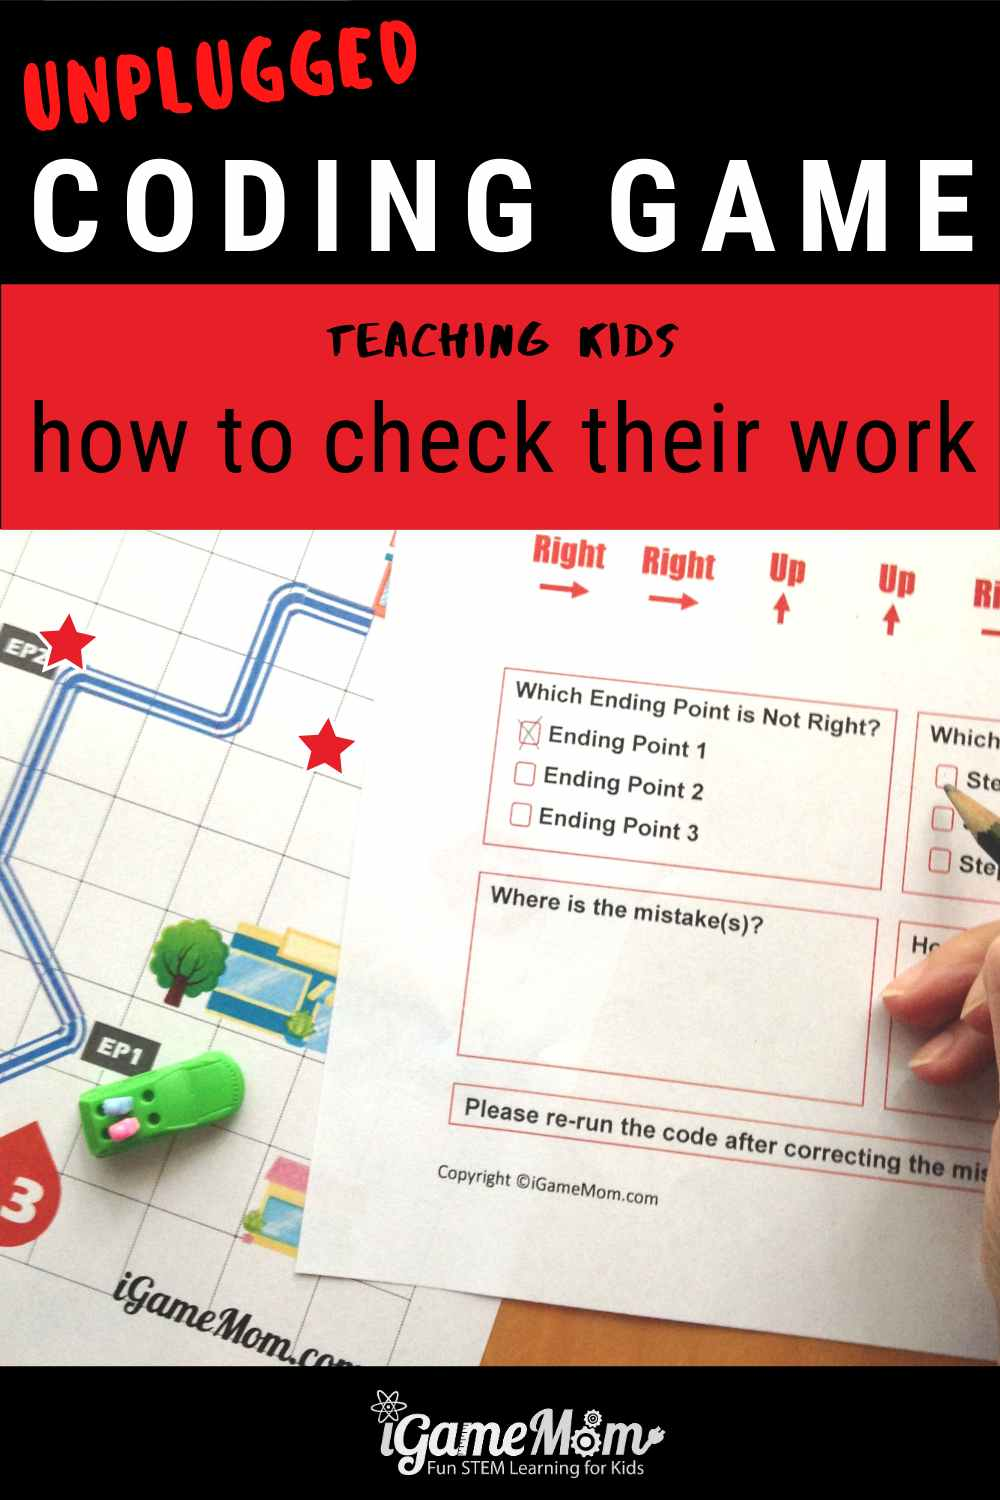 Coding game teaching kids how to check their work. No computer needed. Unplugged STEM activity for beginner girls and boys for Hour of Code, Tech Class, Homeschool.